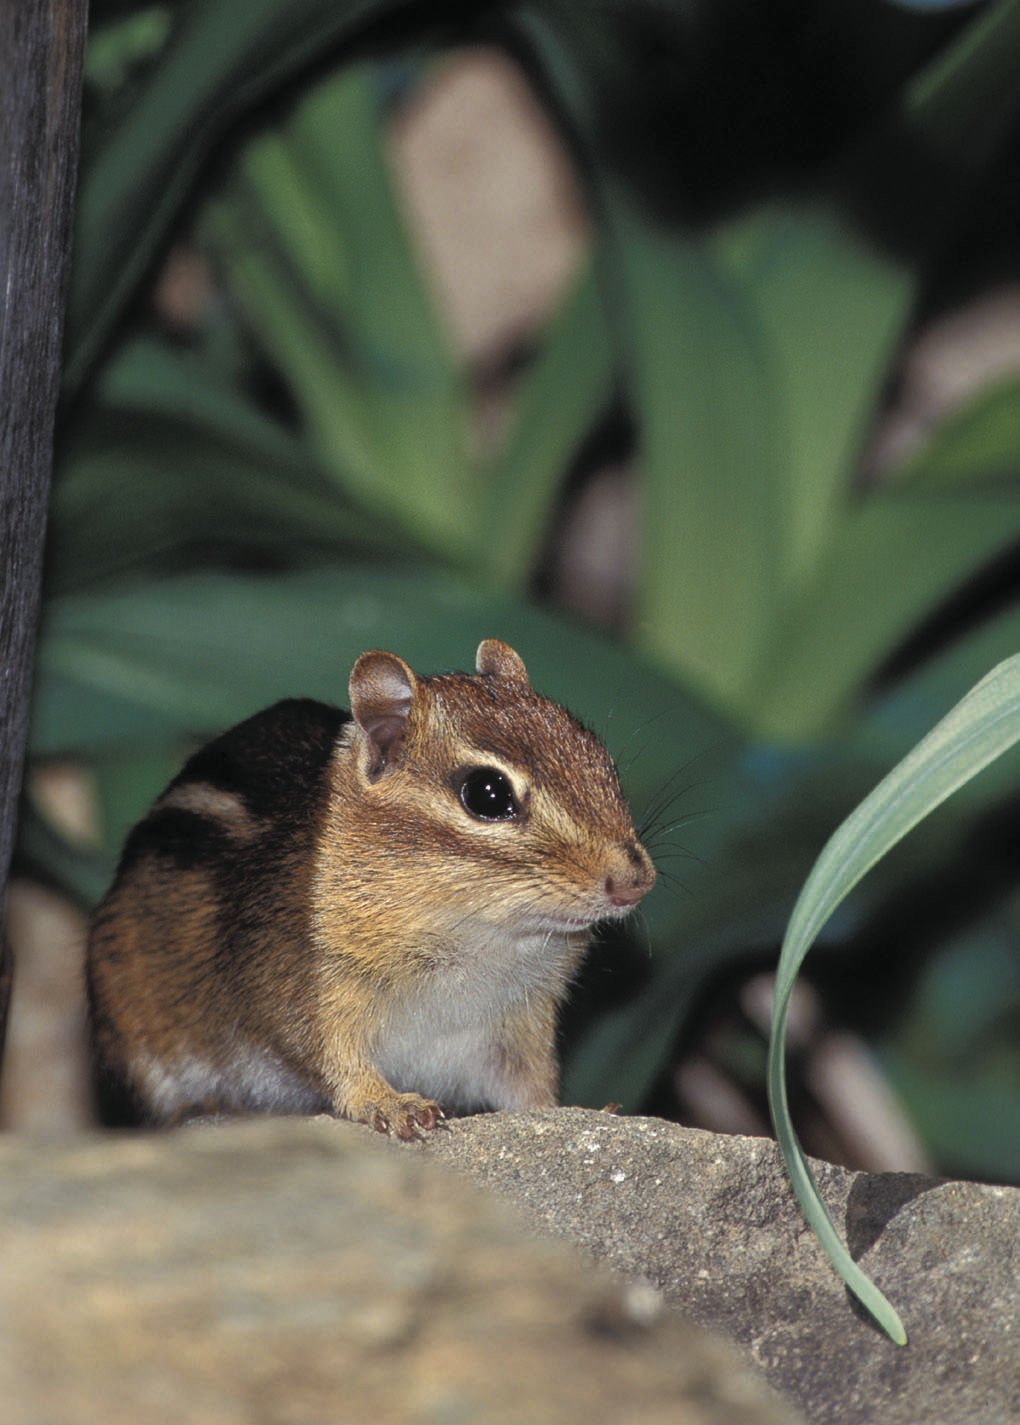 The mighty chipmunk